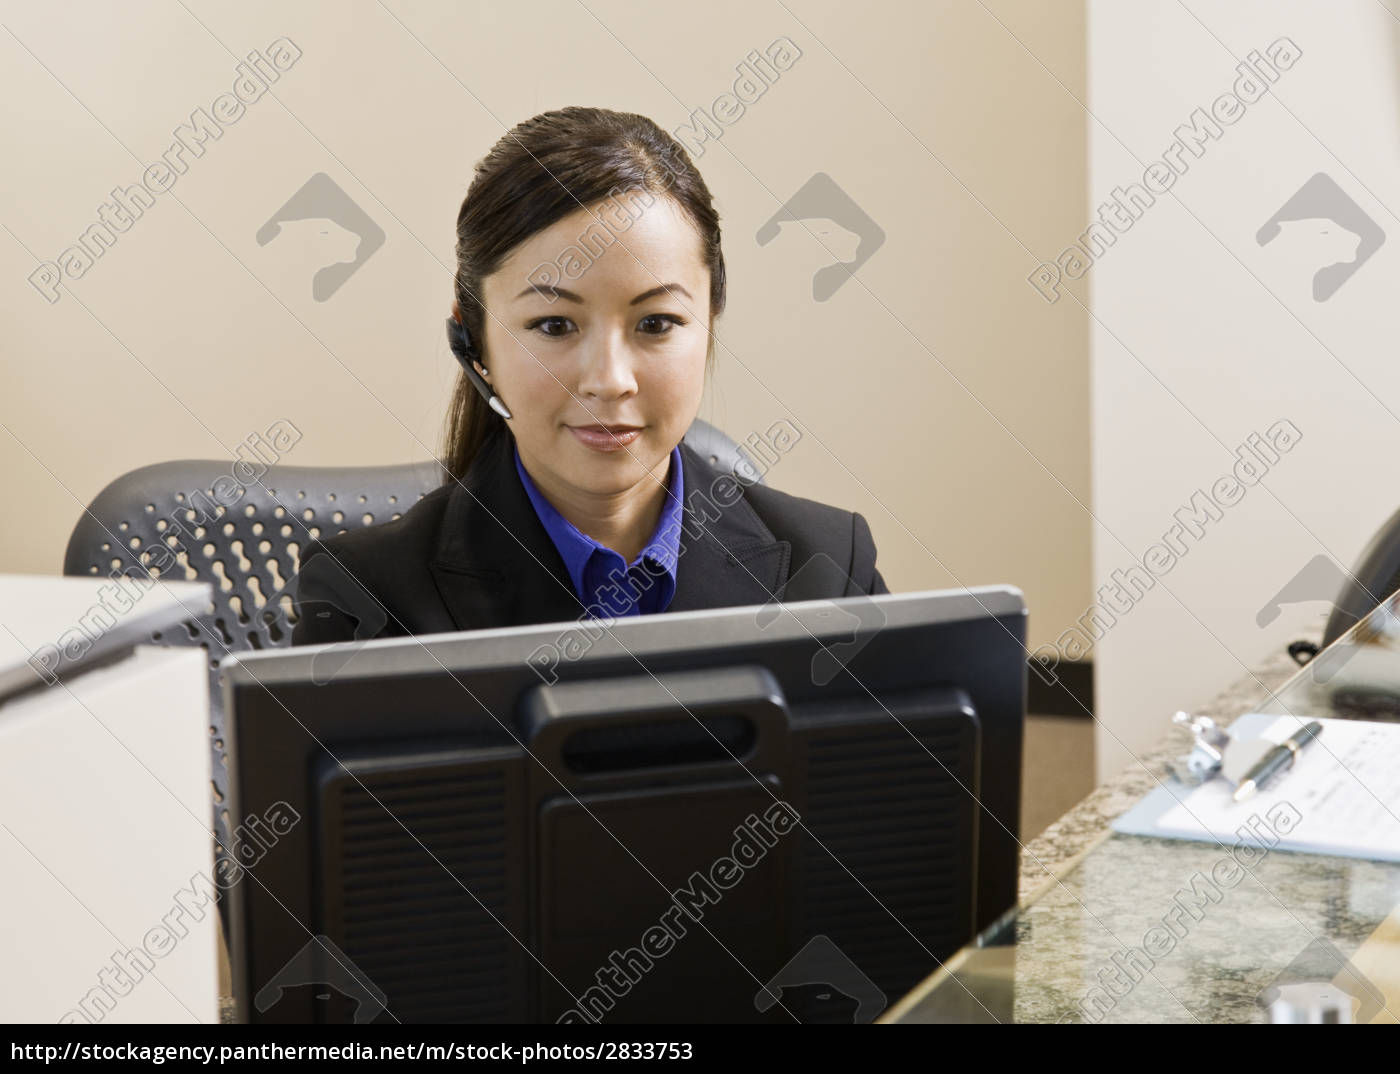 woman, office, laugh, laughs, laughing, twit - 2833753